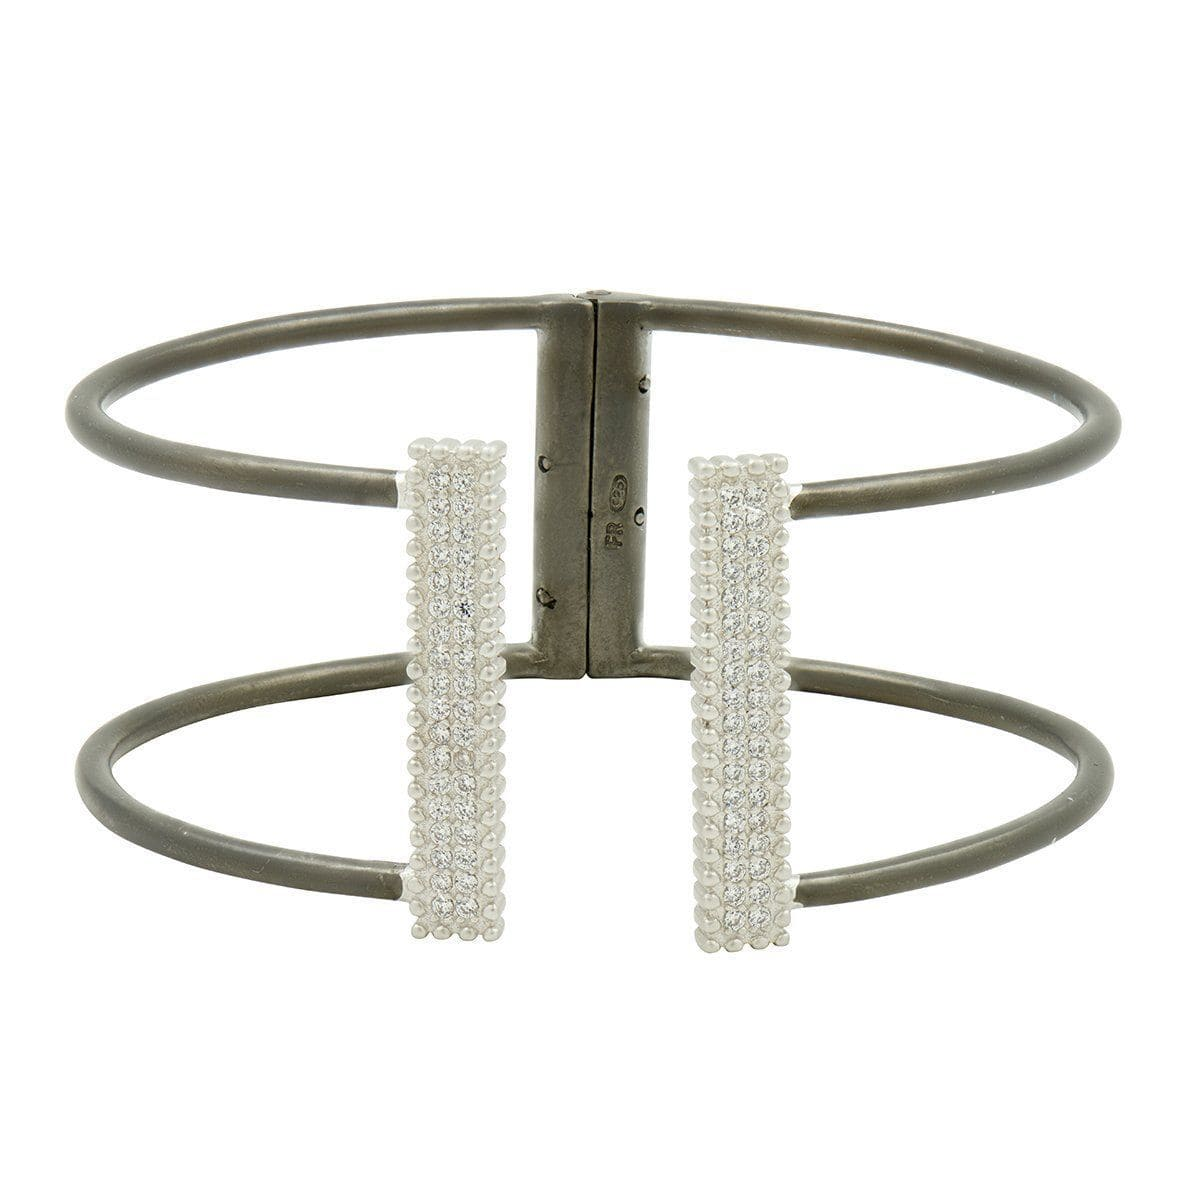 Industrial Finish Open Pave Bangle - IFPKZB01-H